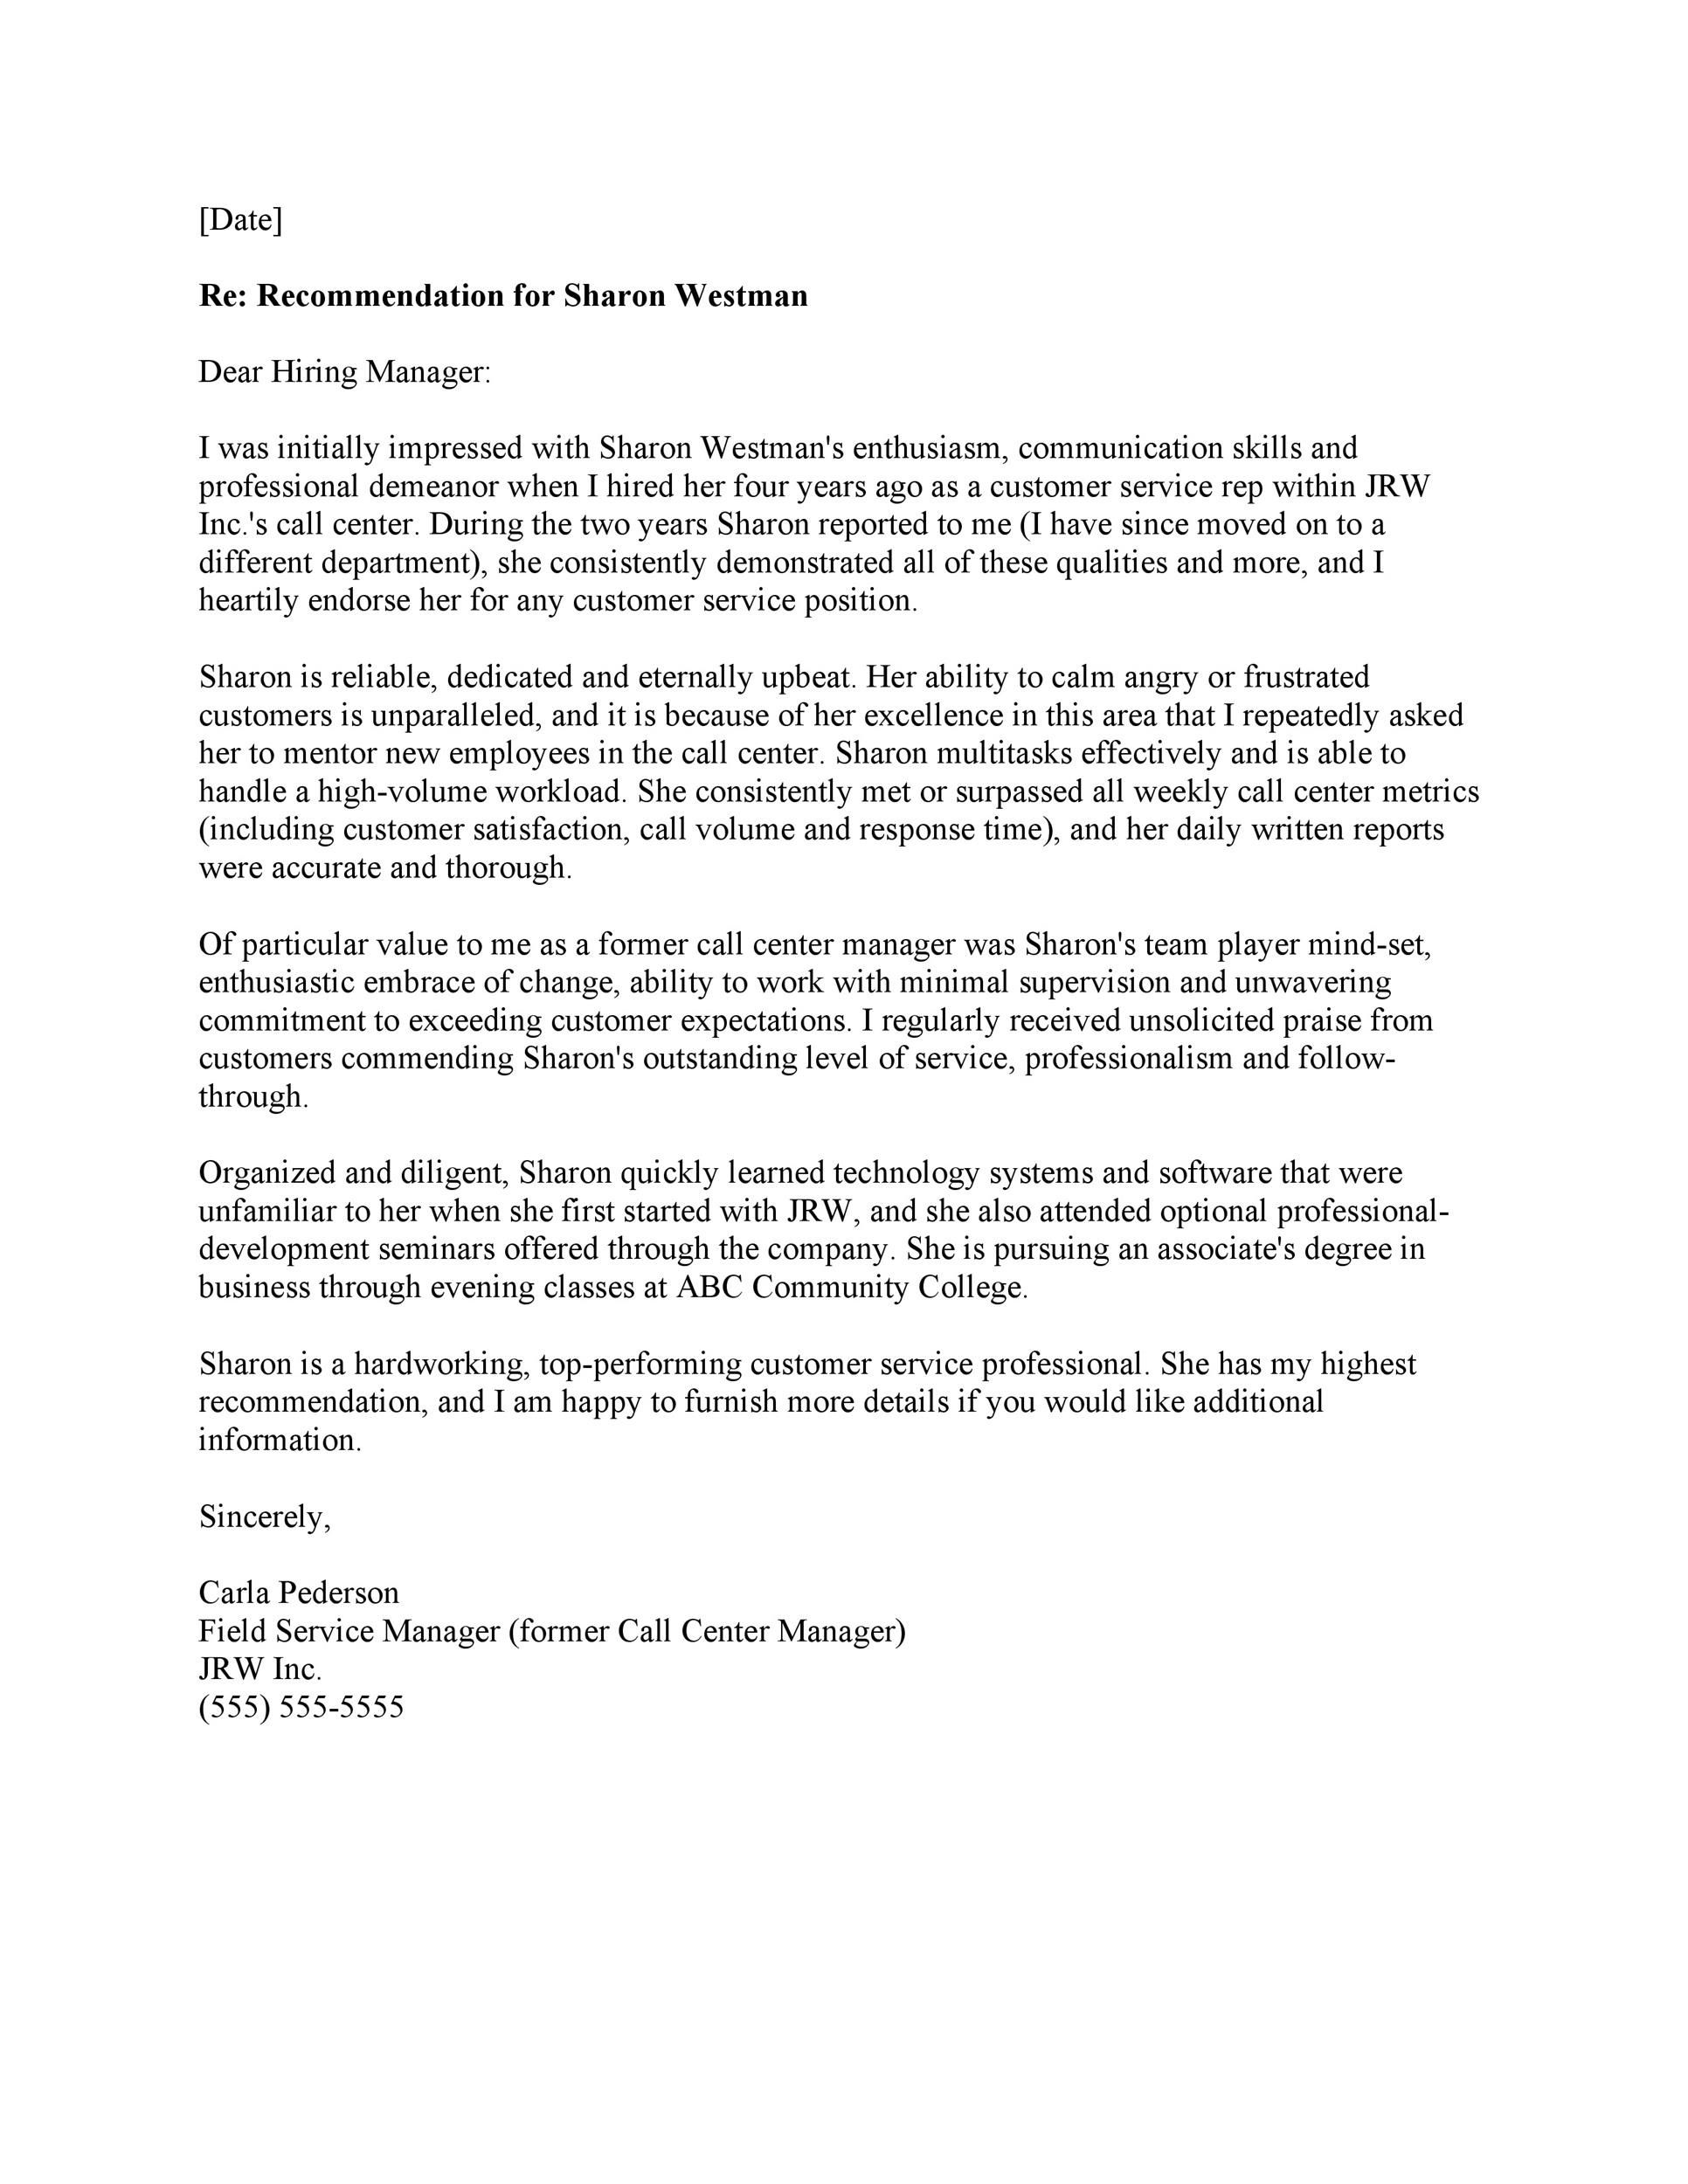 004 Amazing Letter Of Recommendation Template Highest Quality  For Teacher Student From Coach WordFull